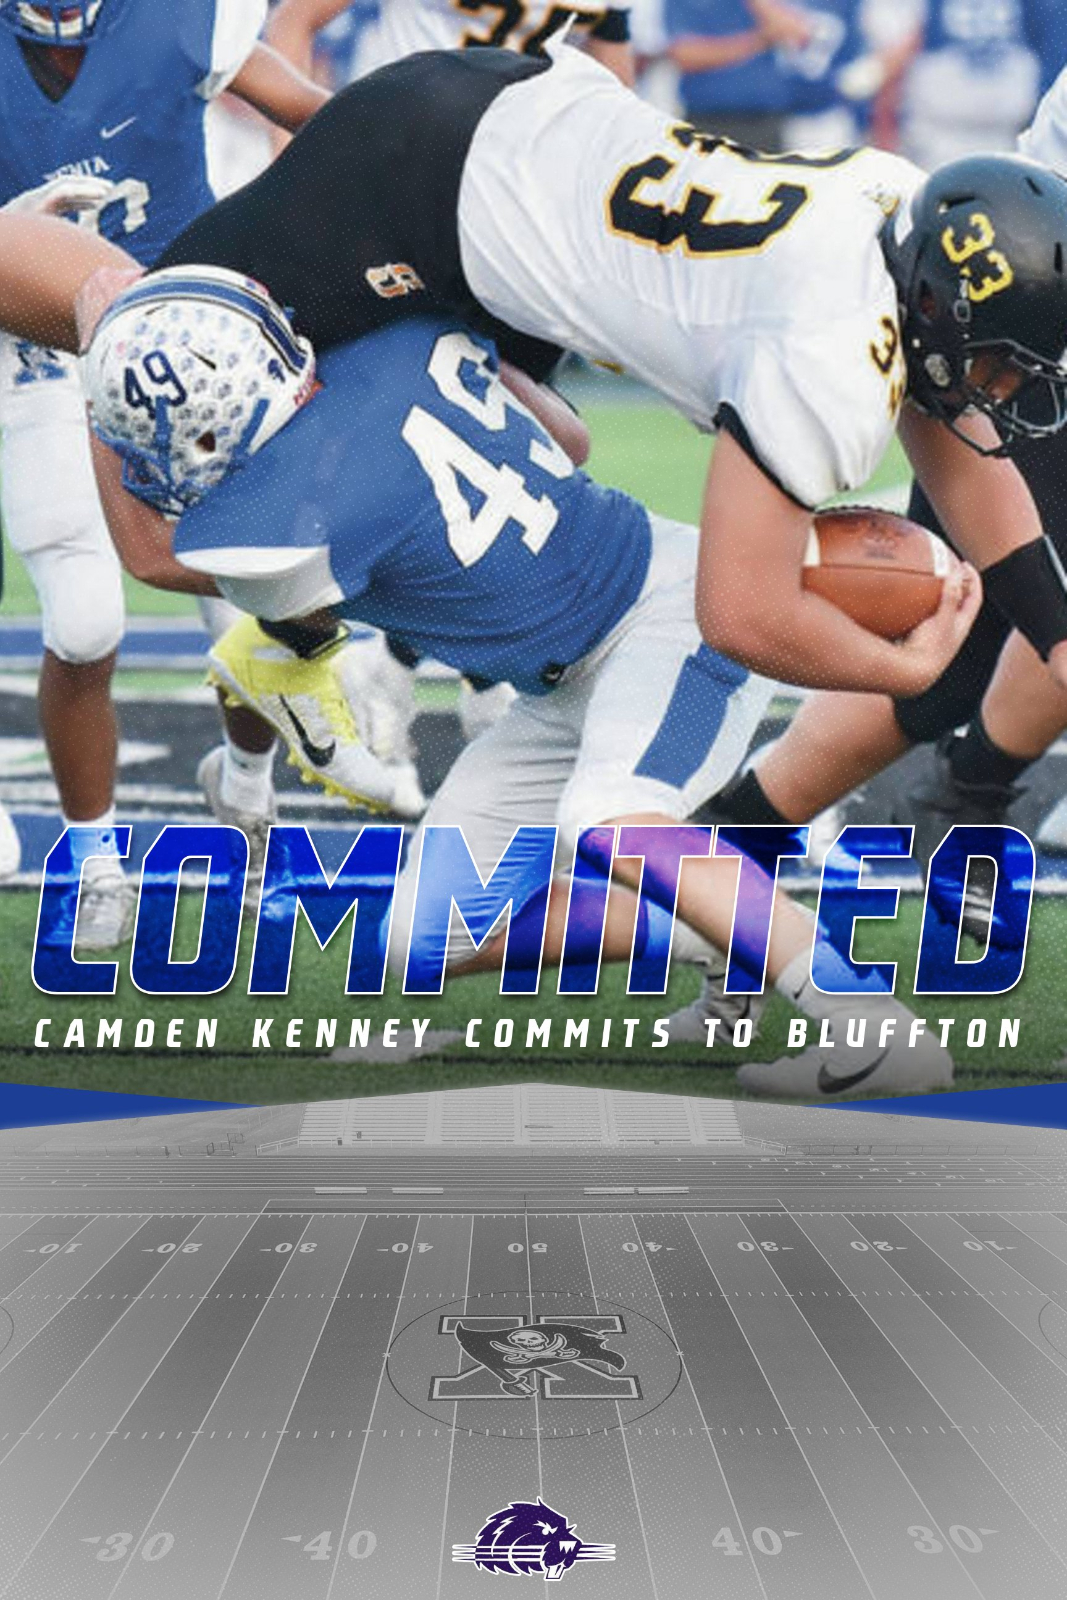 Camden Kenney Commits To Bluffton